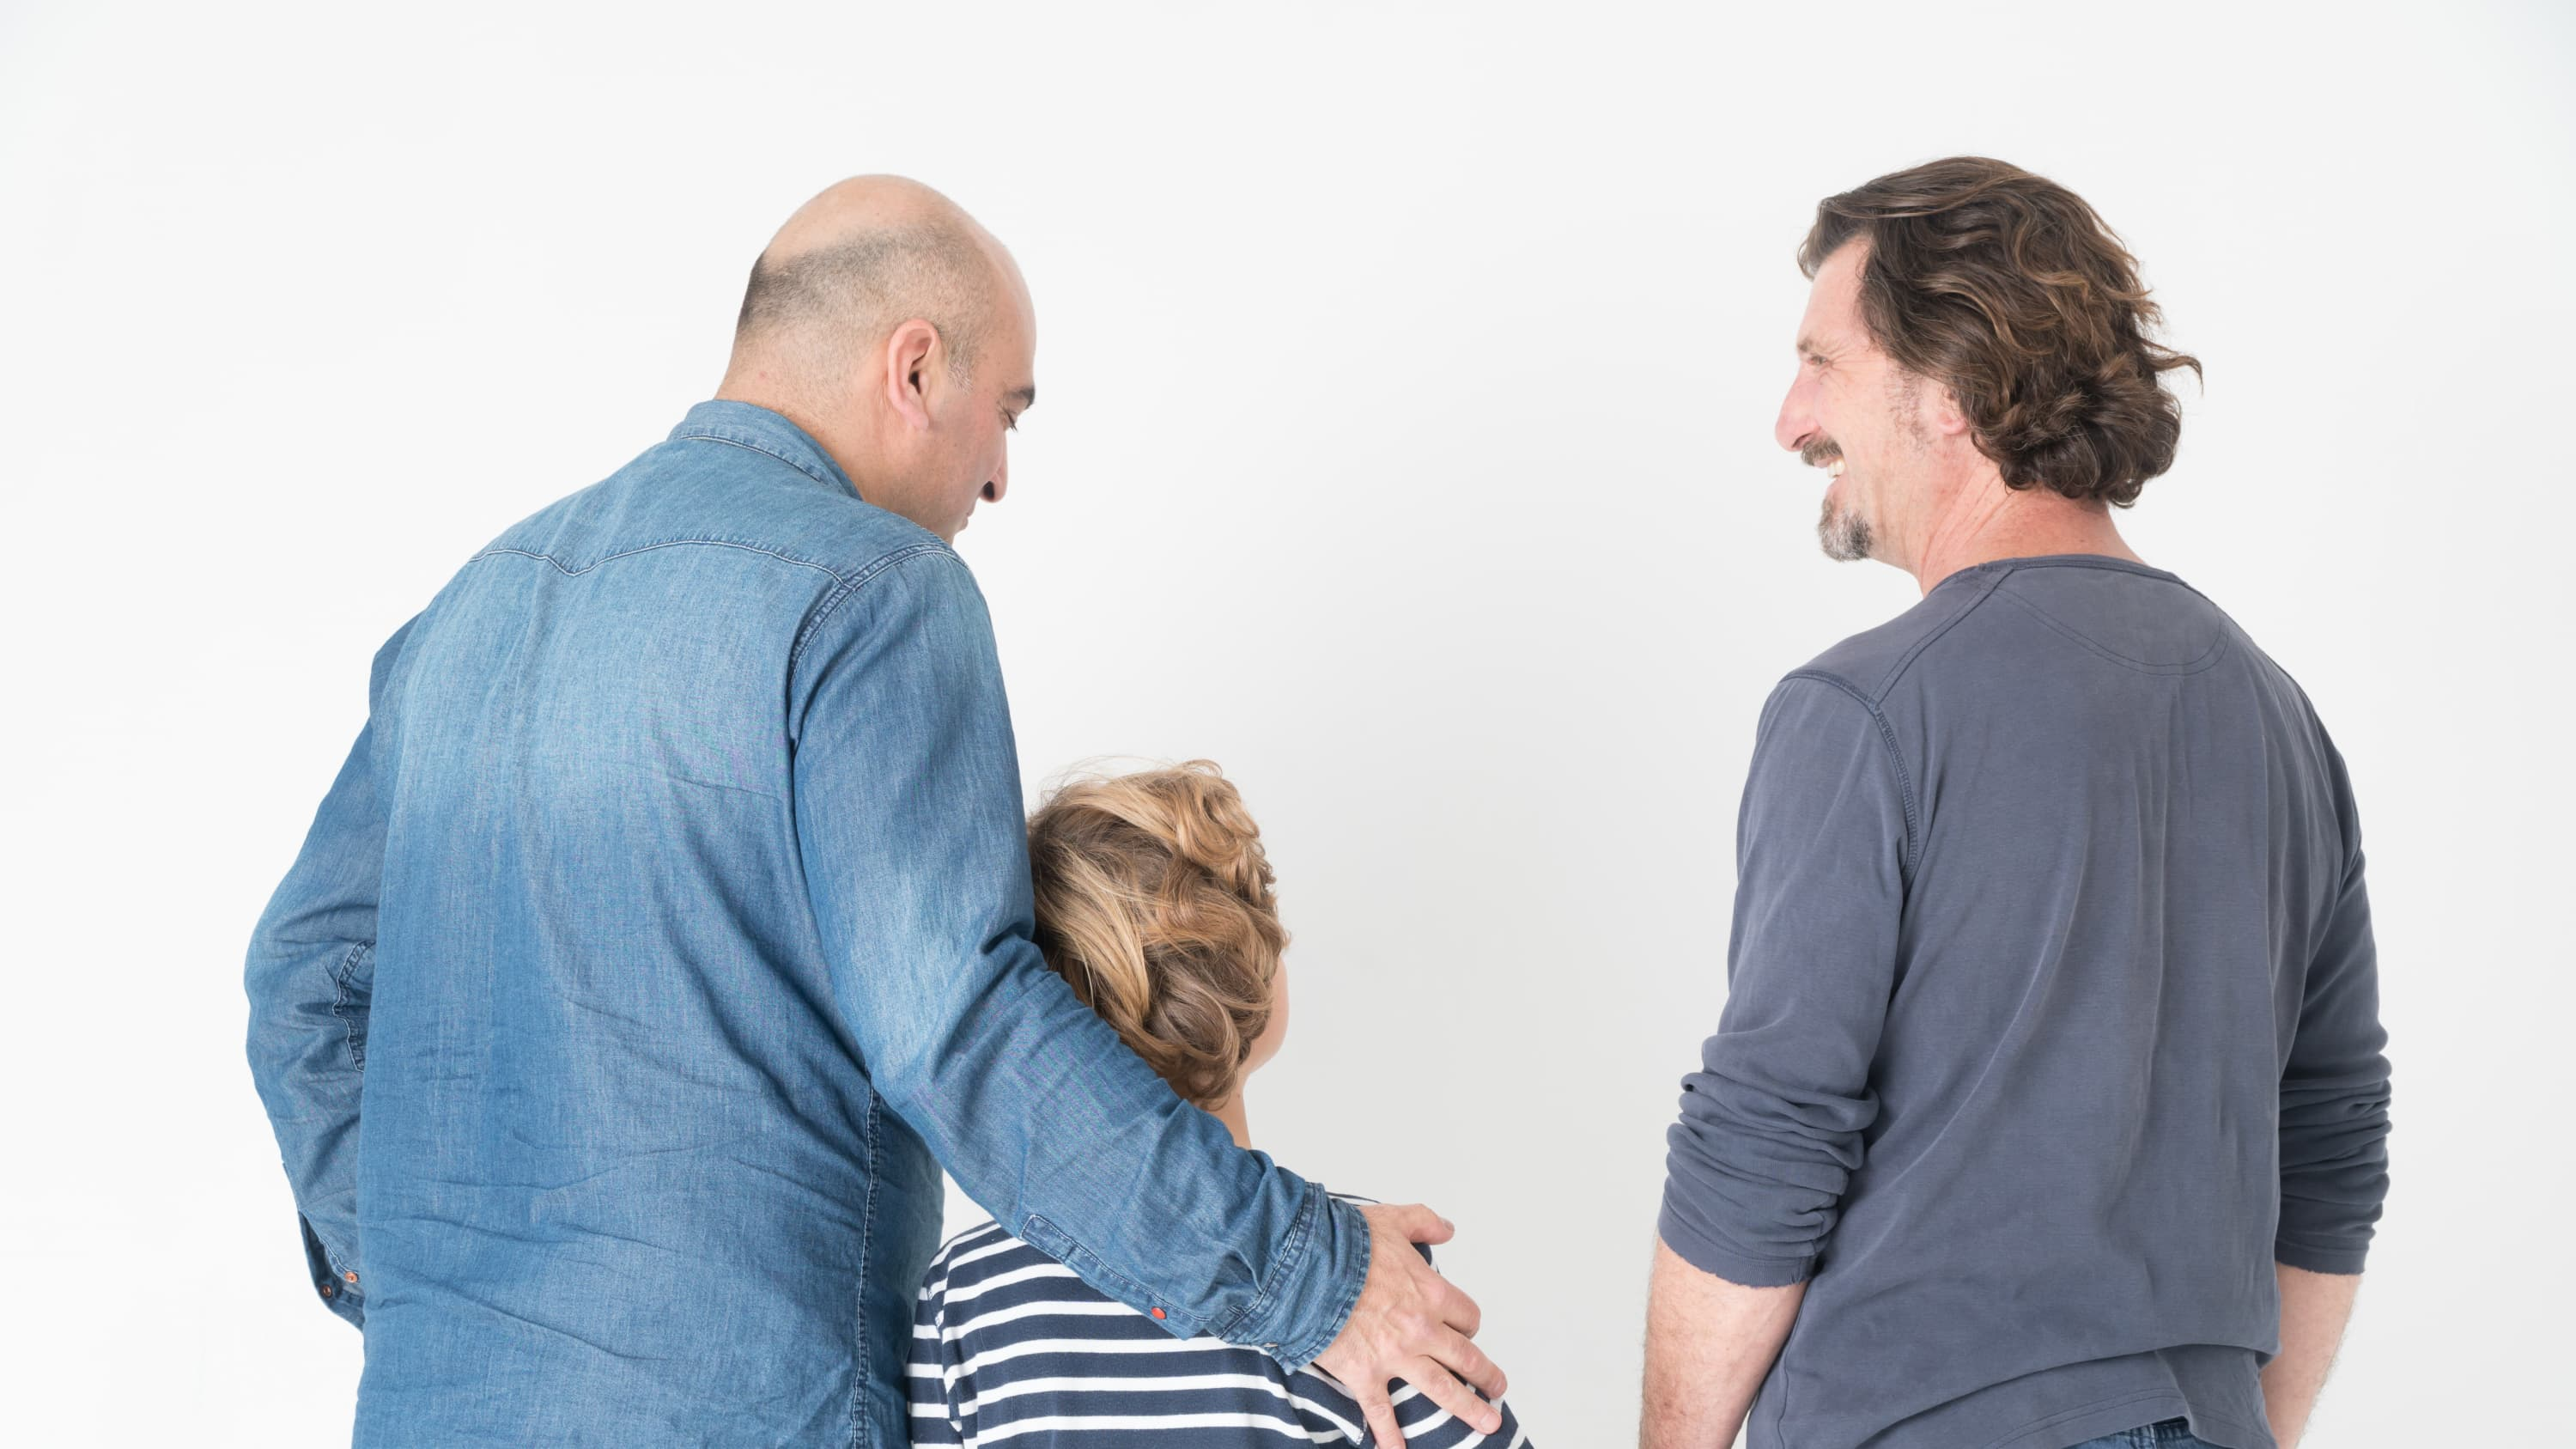 An older man and a younger man are walking with a child who has idiopathic short stature.